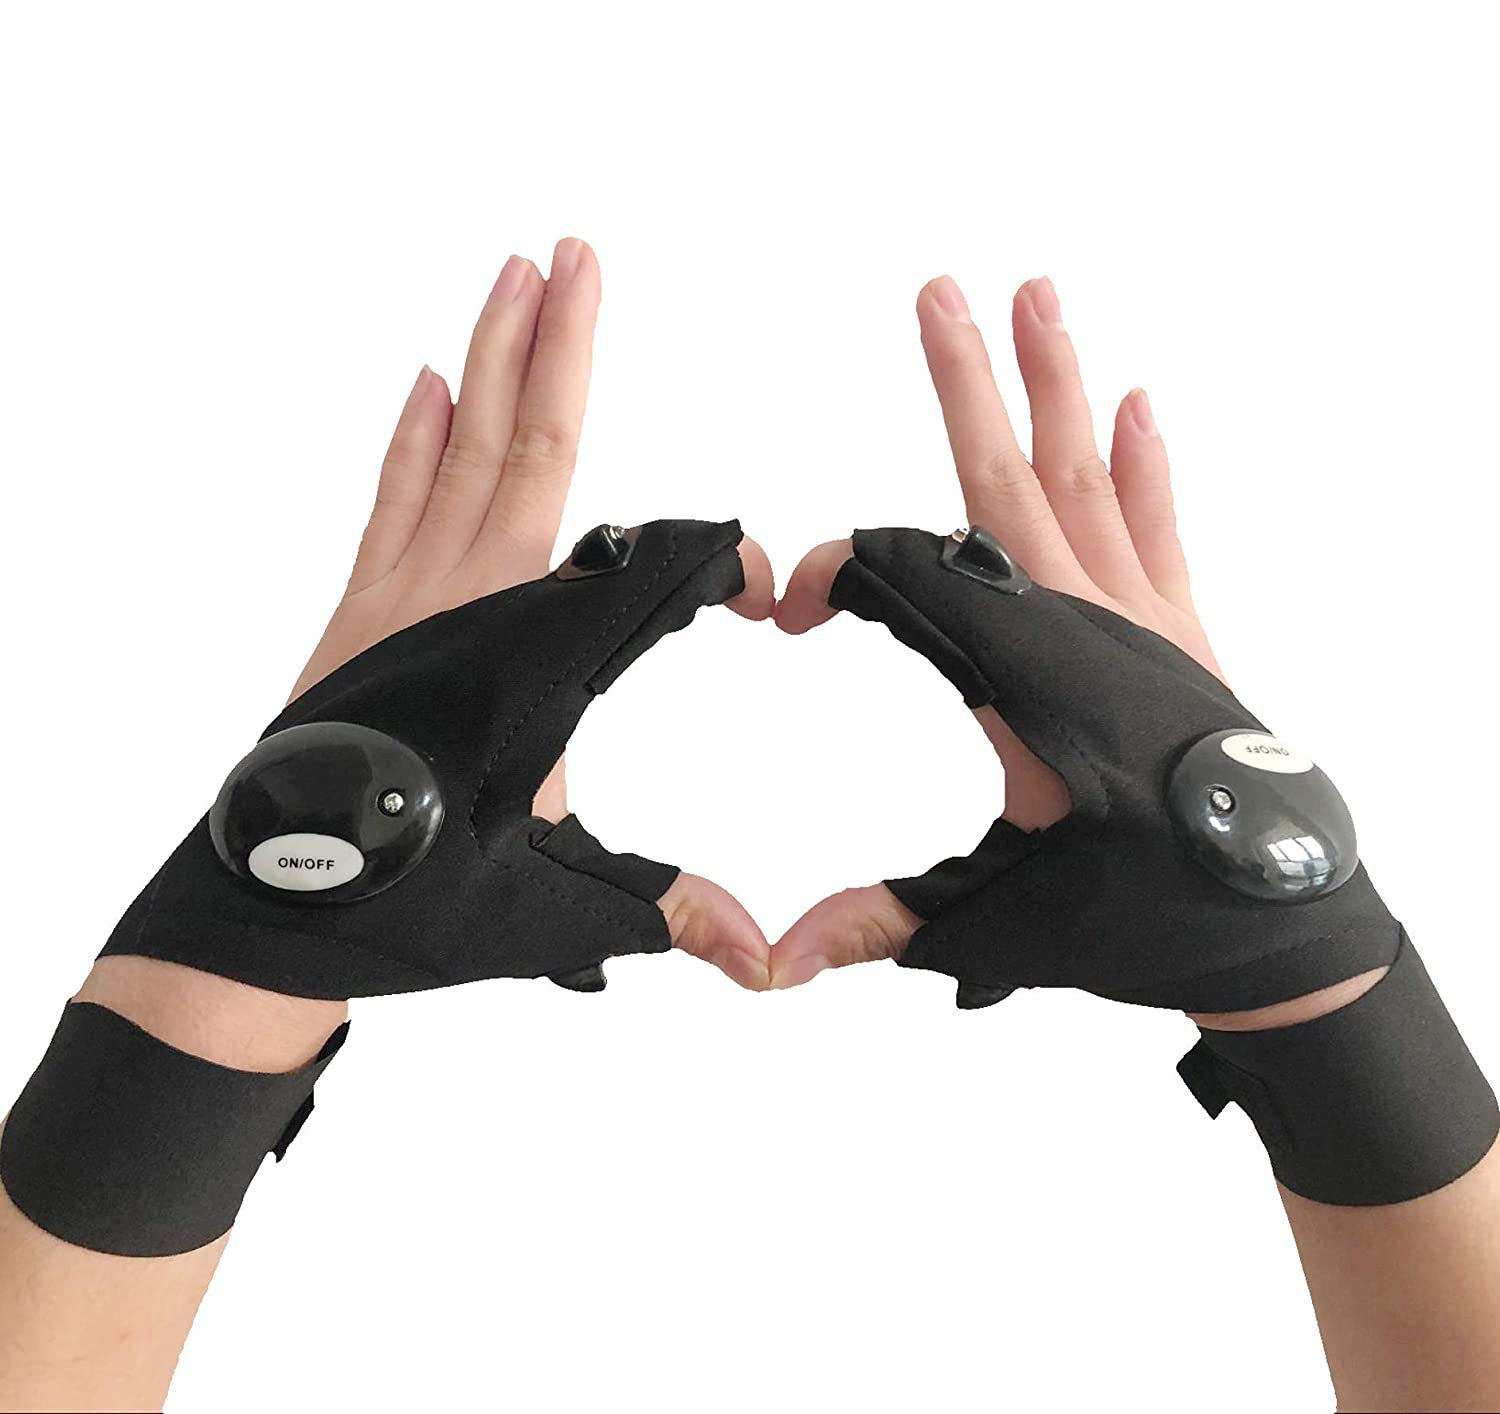 Coroler Cool Fingerless LED Flashlight Gloves for Repairing,Working in Darkness Places, Fishing, Camping, Hiking and Outdoor Activities